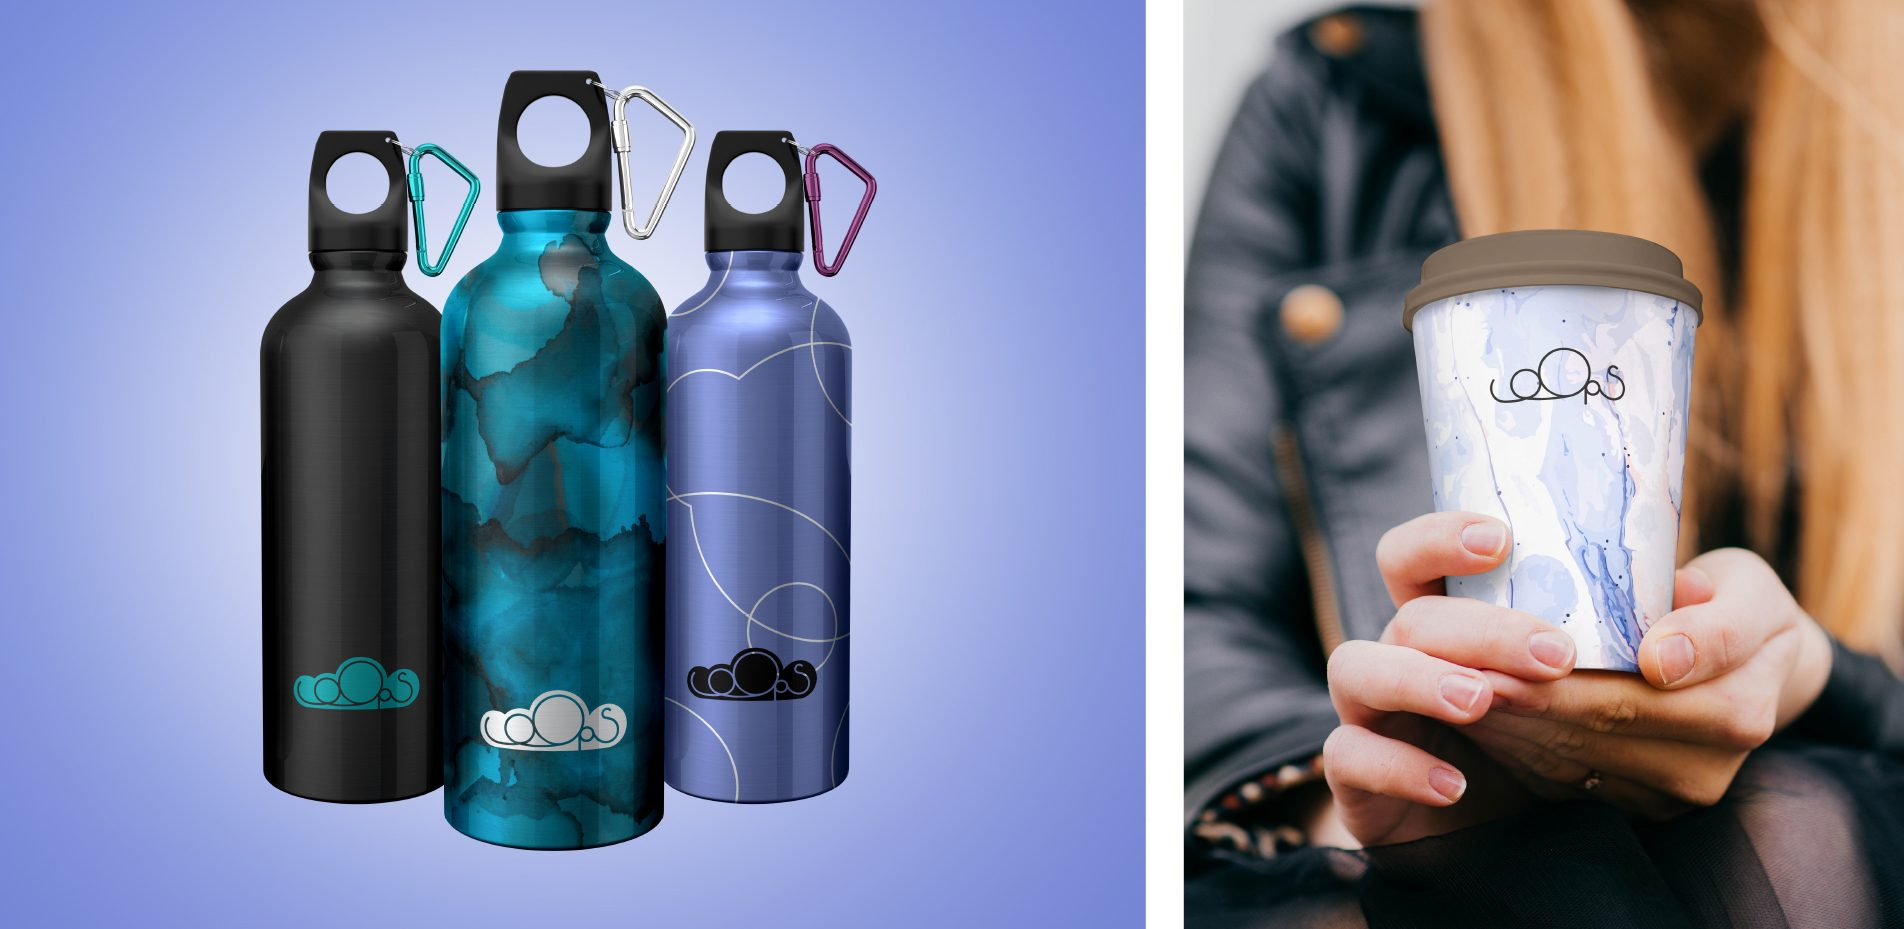 Branded products - water bottles and reusable coffee cups